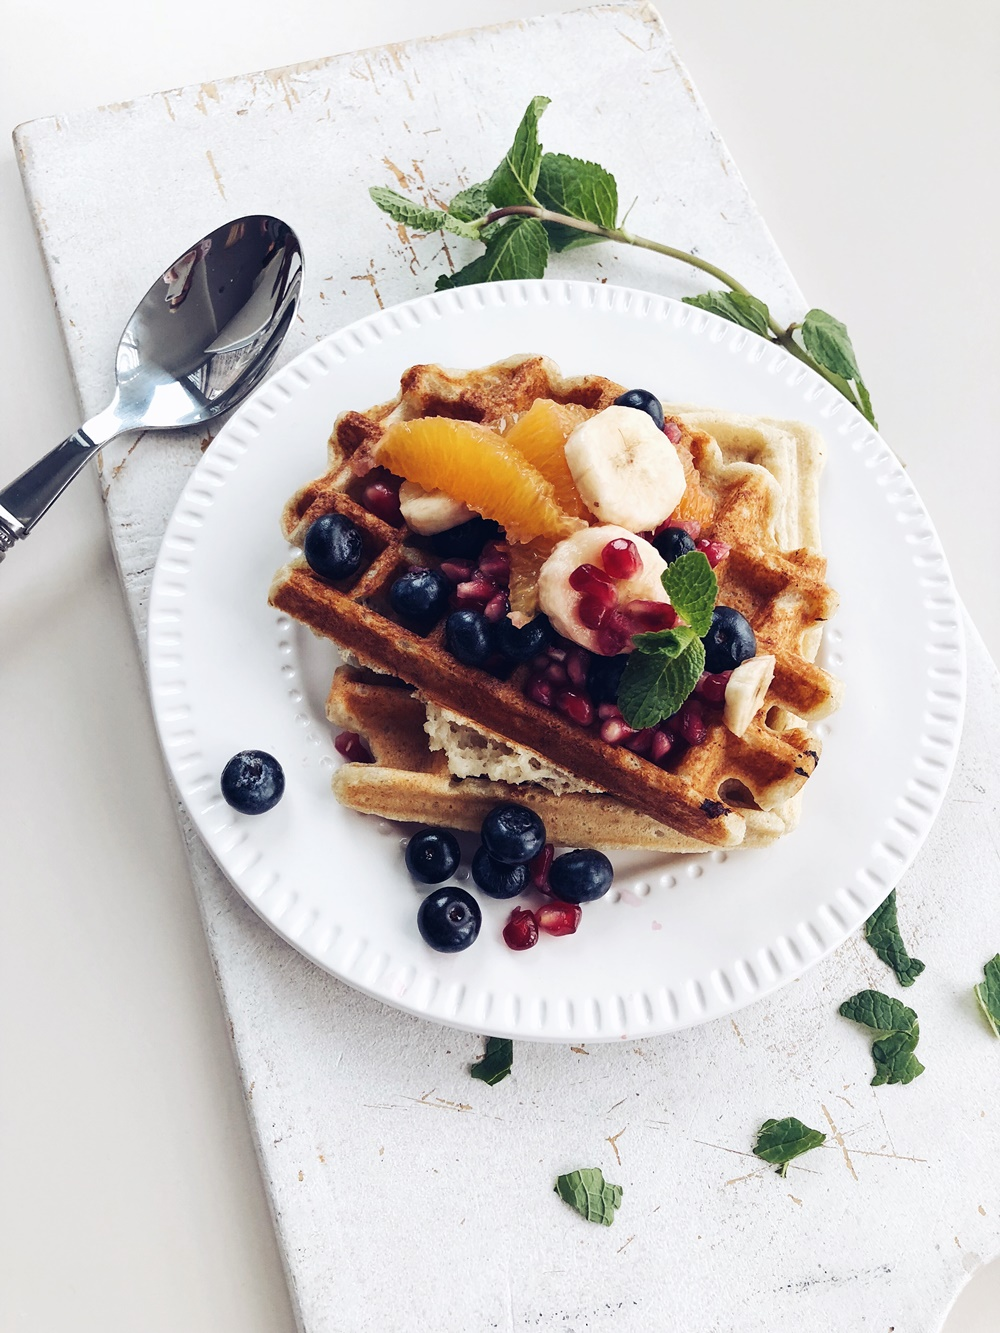 bananen waffeln mit obstsalat fashion kitchen. Black Bedroom Furniture Sets. Home Design Ideas